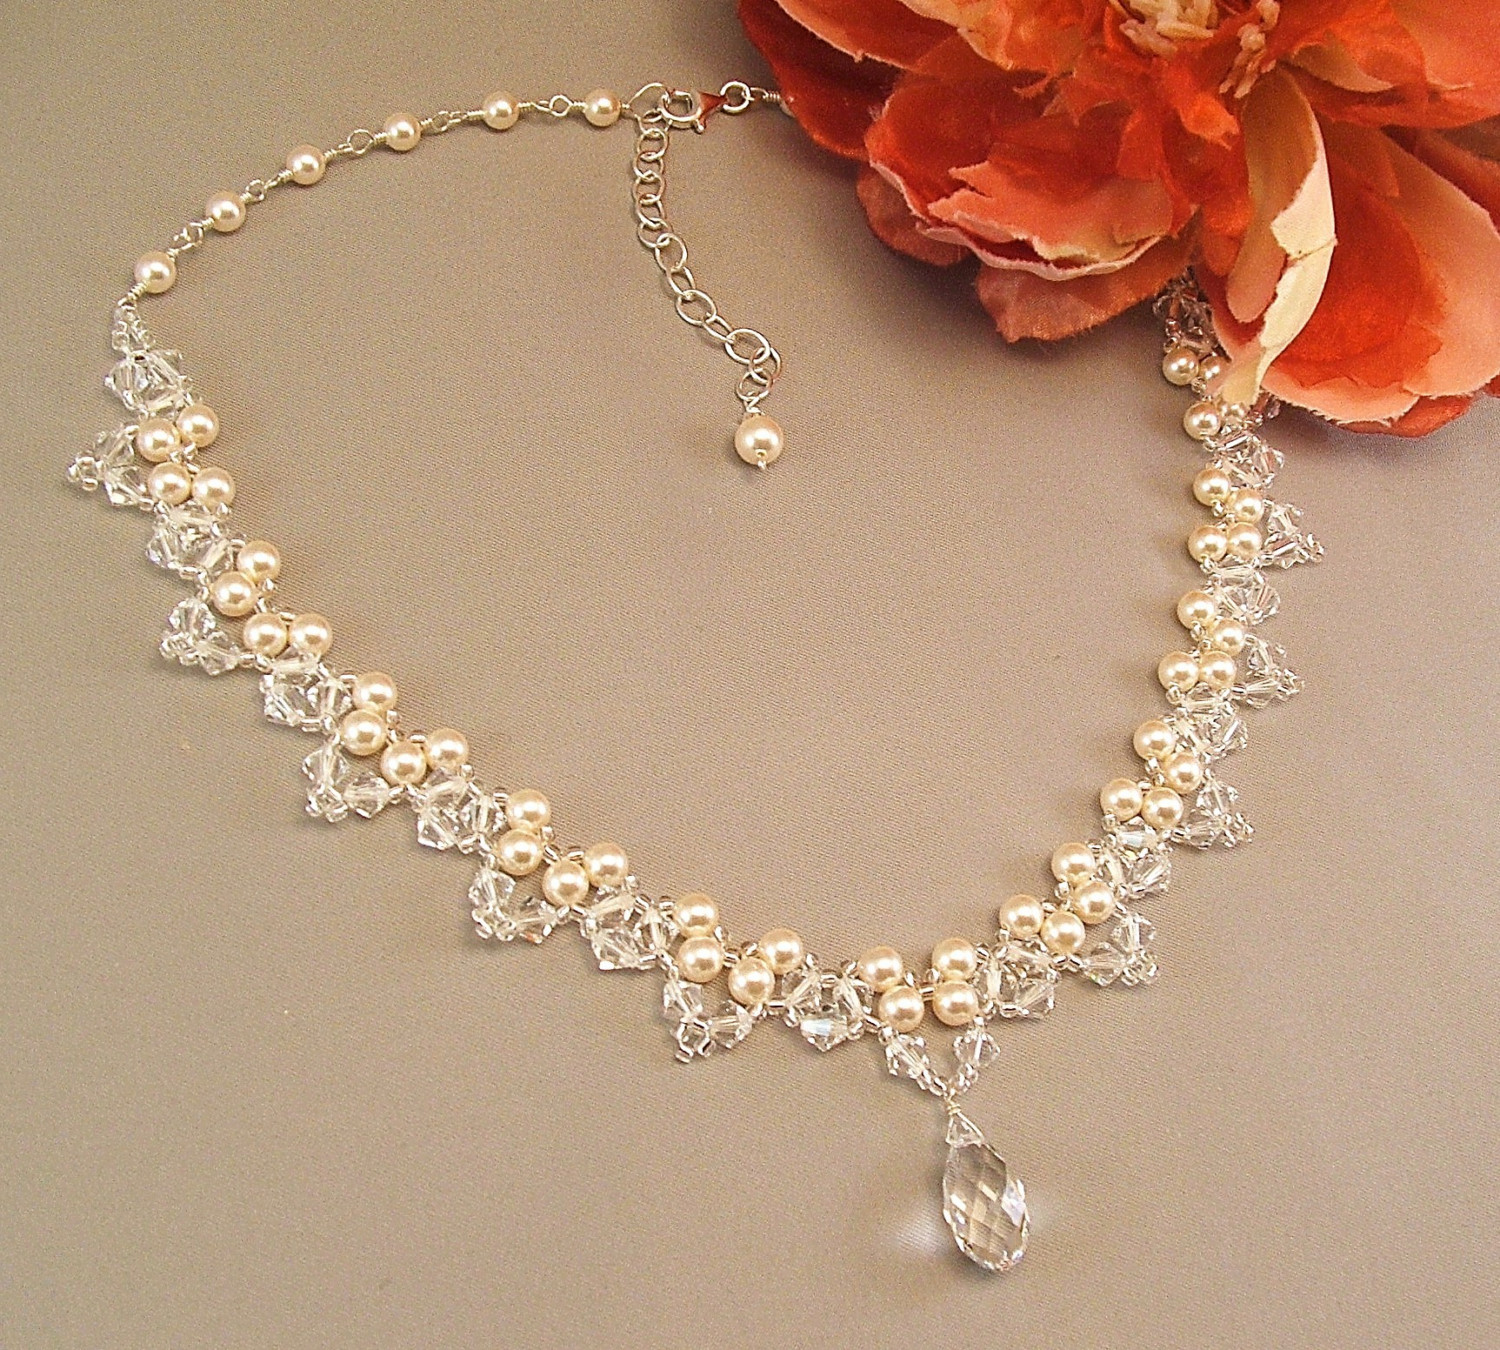 PEARL WEDDING JEWELRY ...